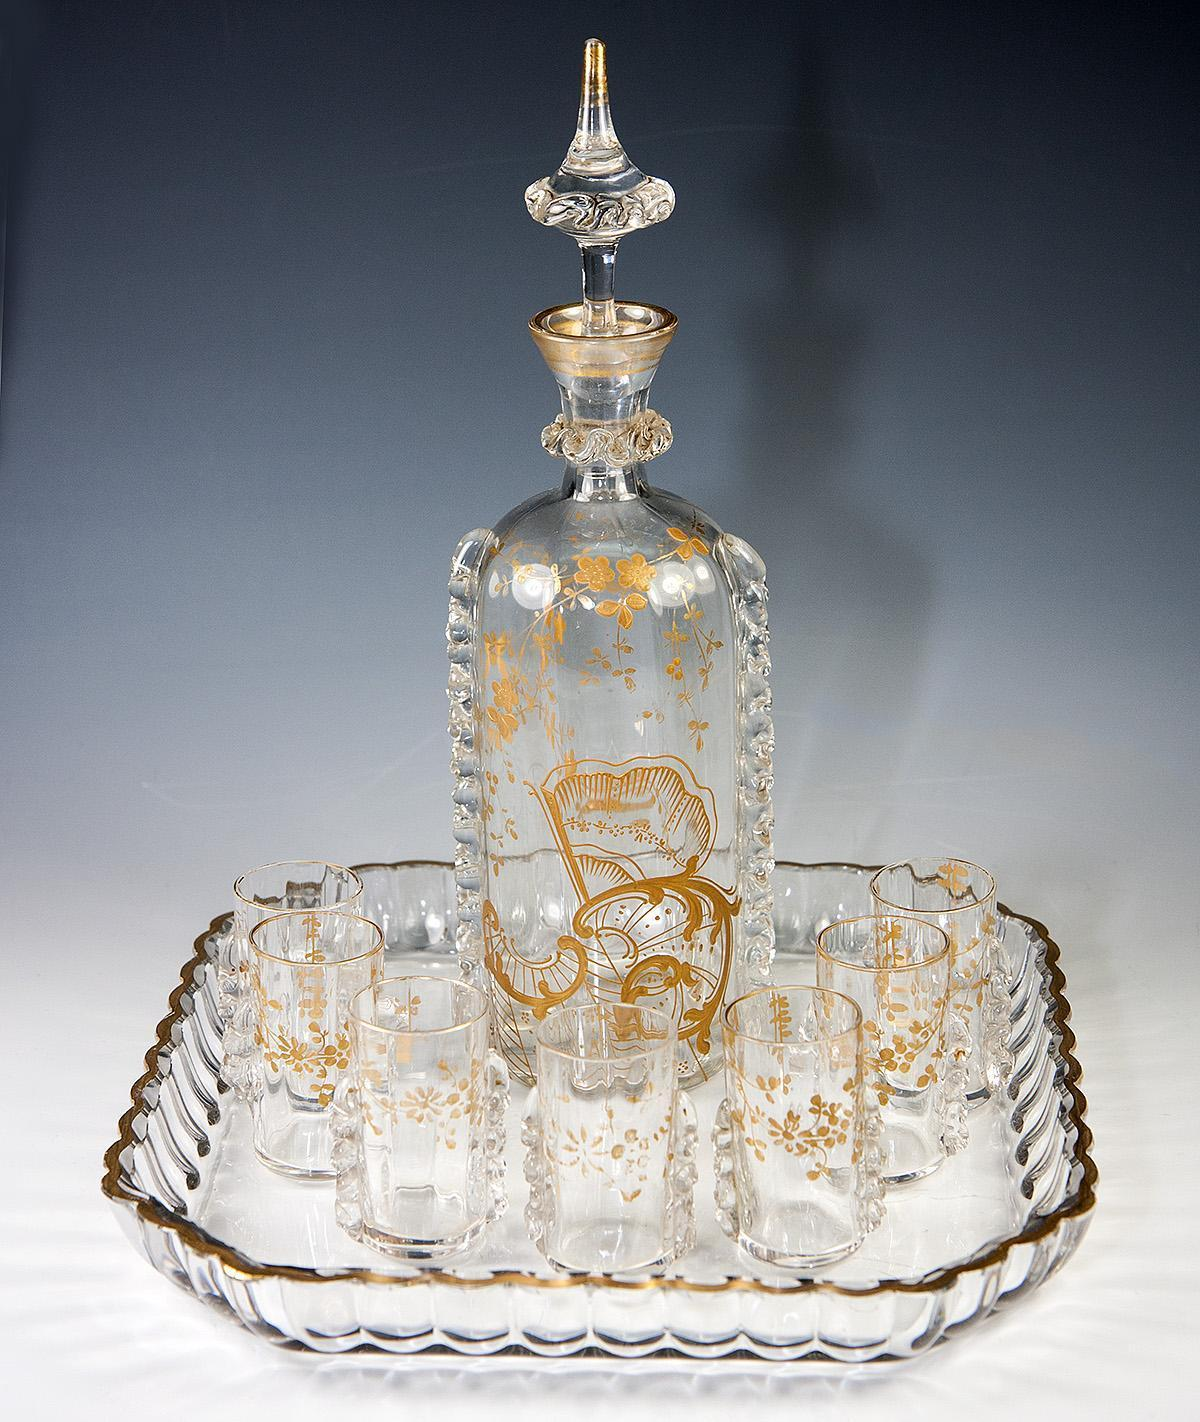 Superb Antique French Cabaret, Liqueur Set by Saint Louis Crystal, Raised Gold Enamel